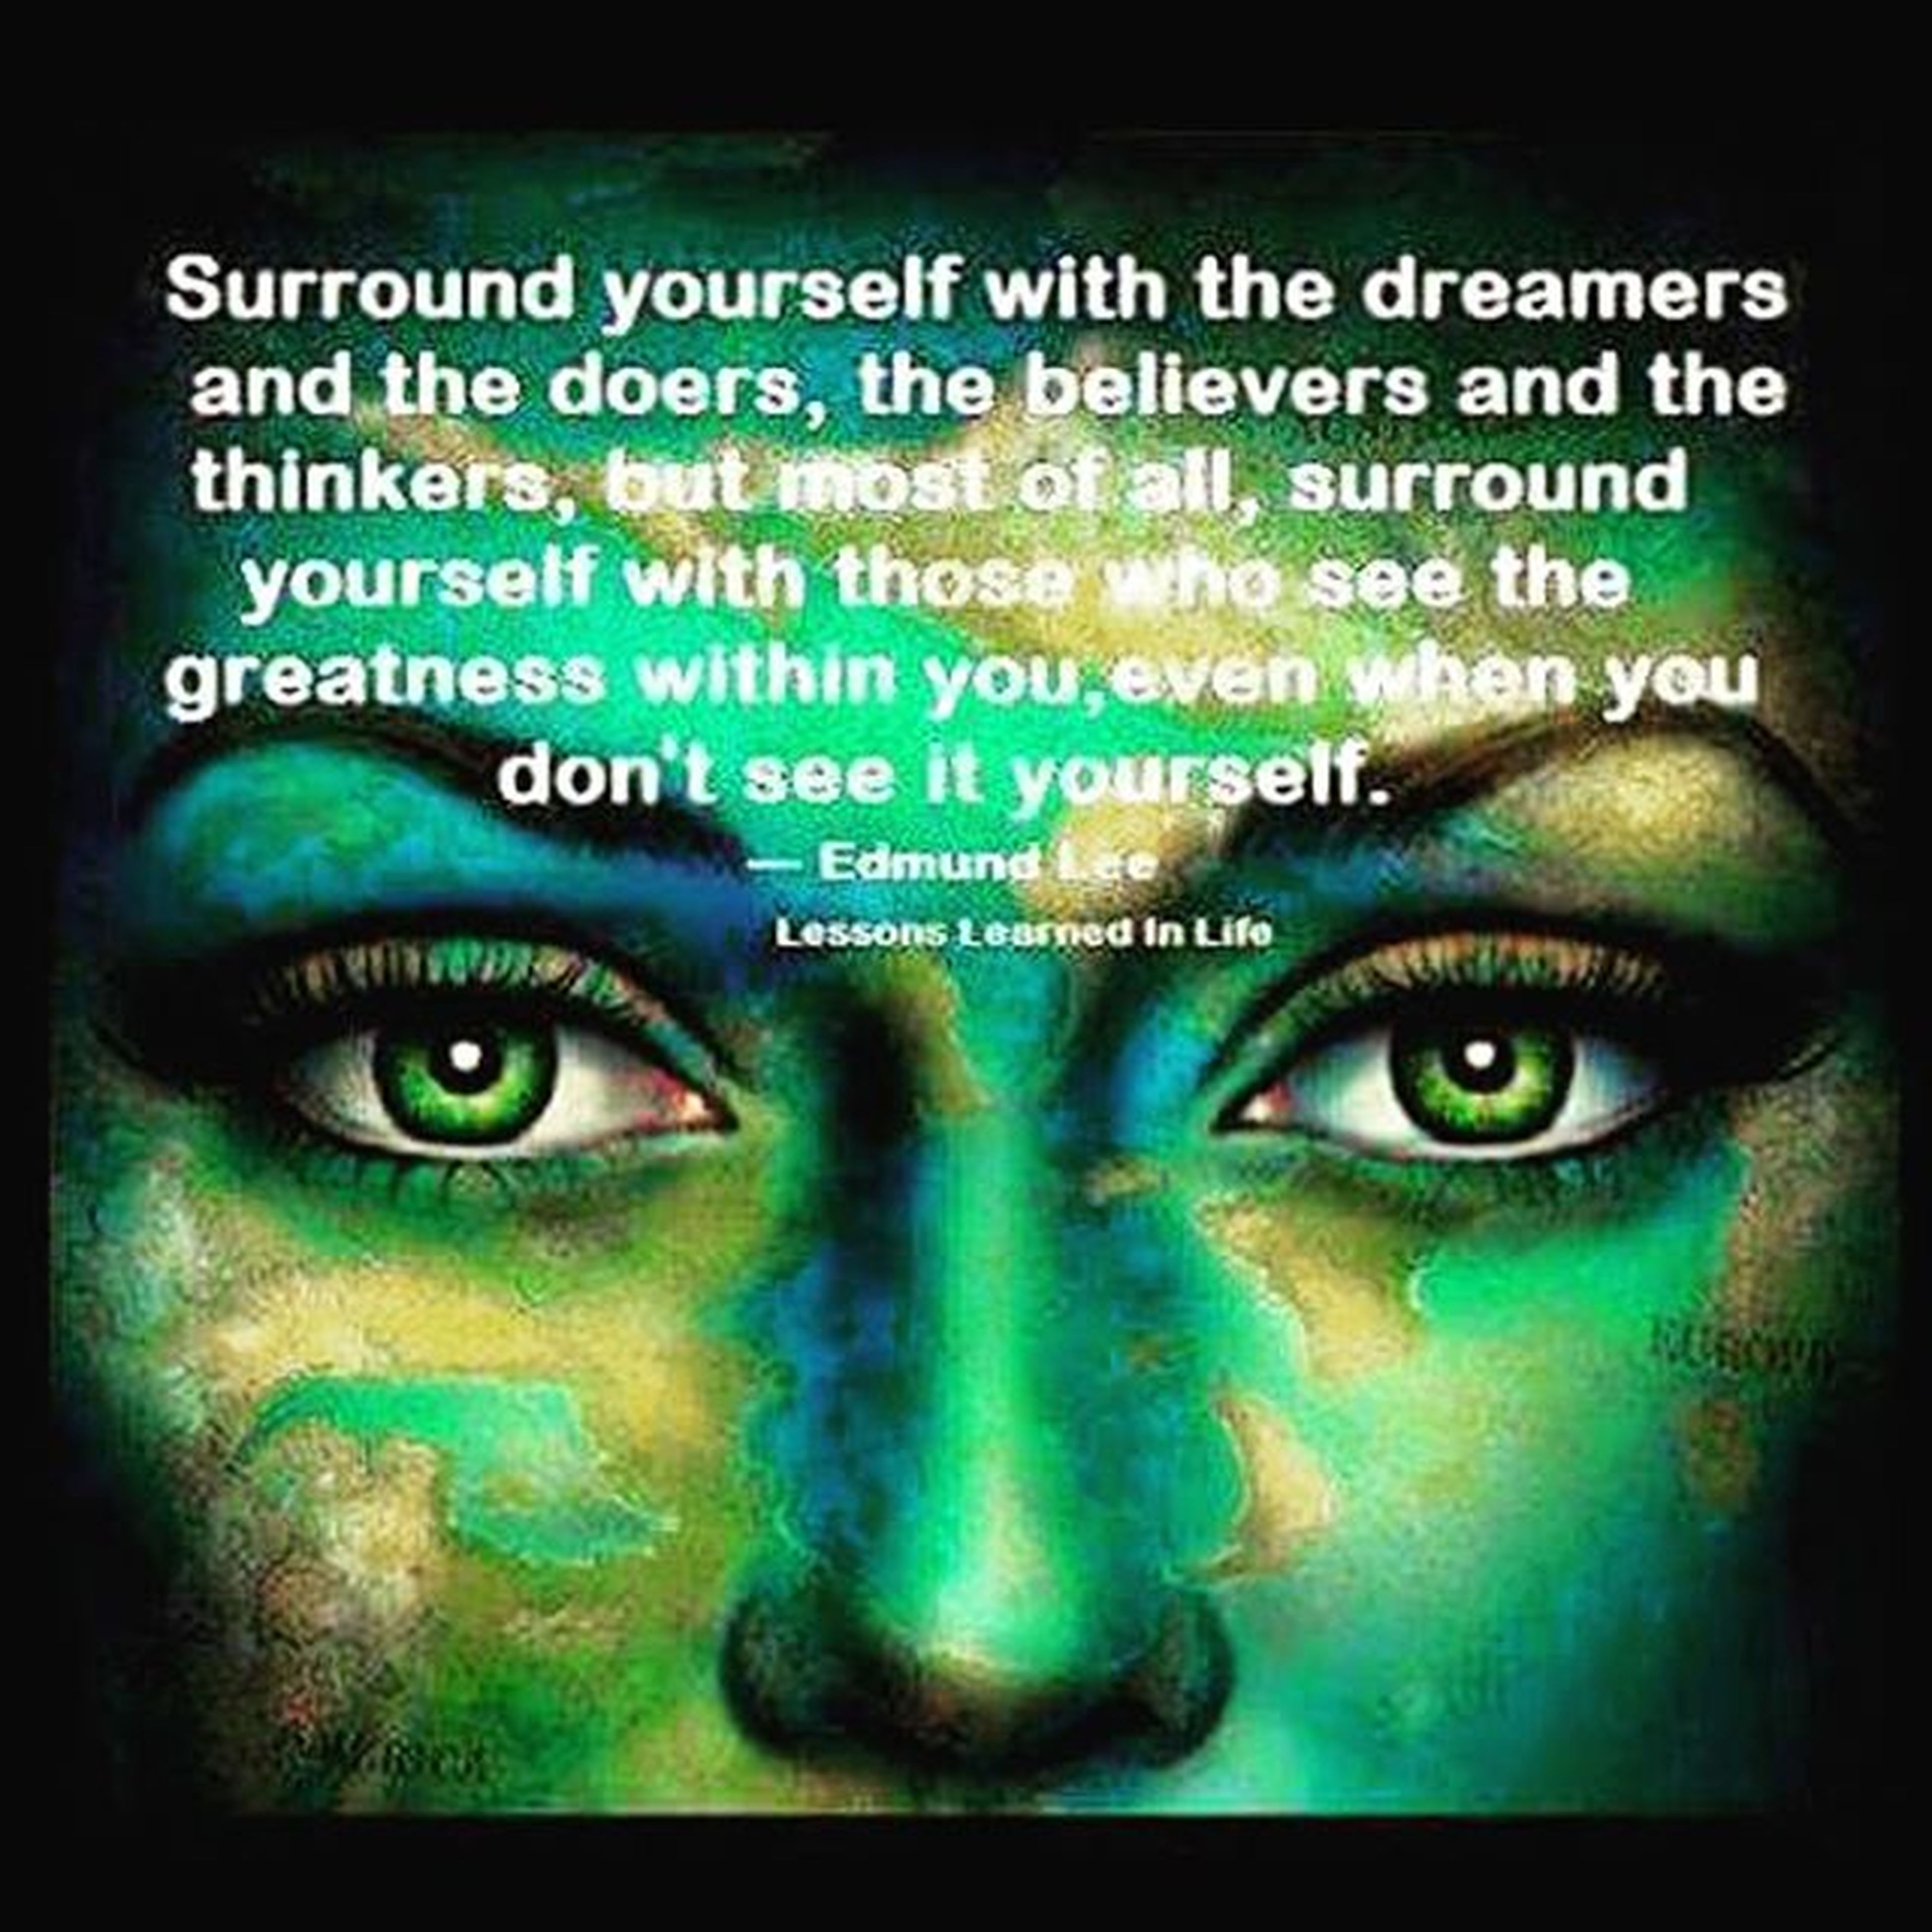 Surroundyourselfwithpositivepeople Thinkers Believers Dreamersanddoers greatnessawaits powerofpositivity